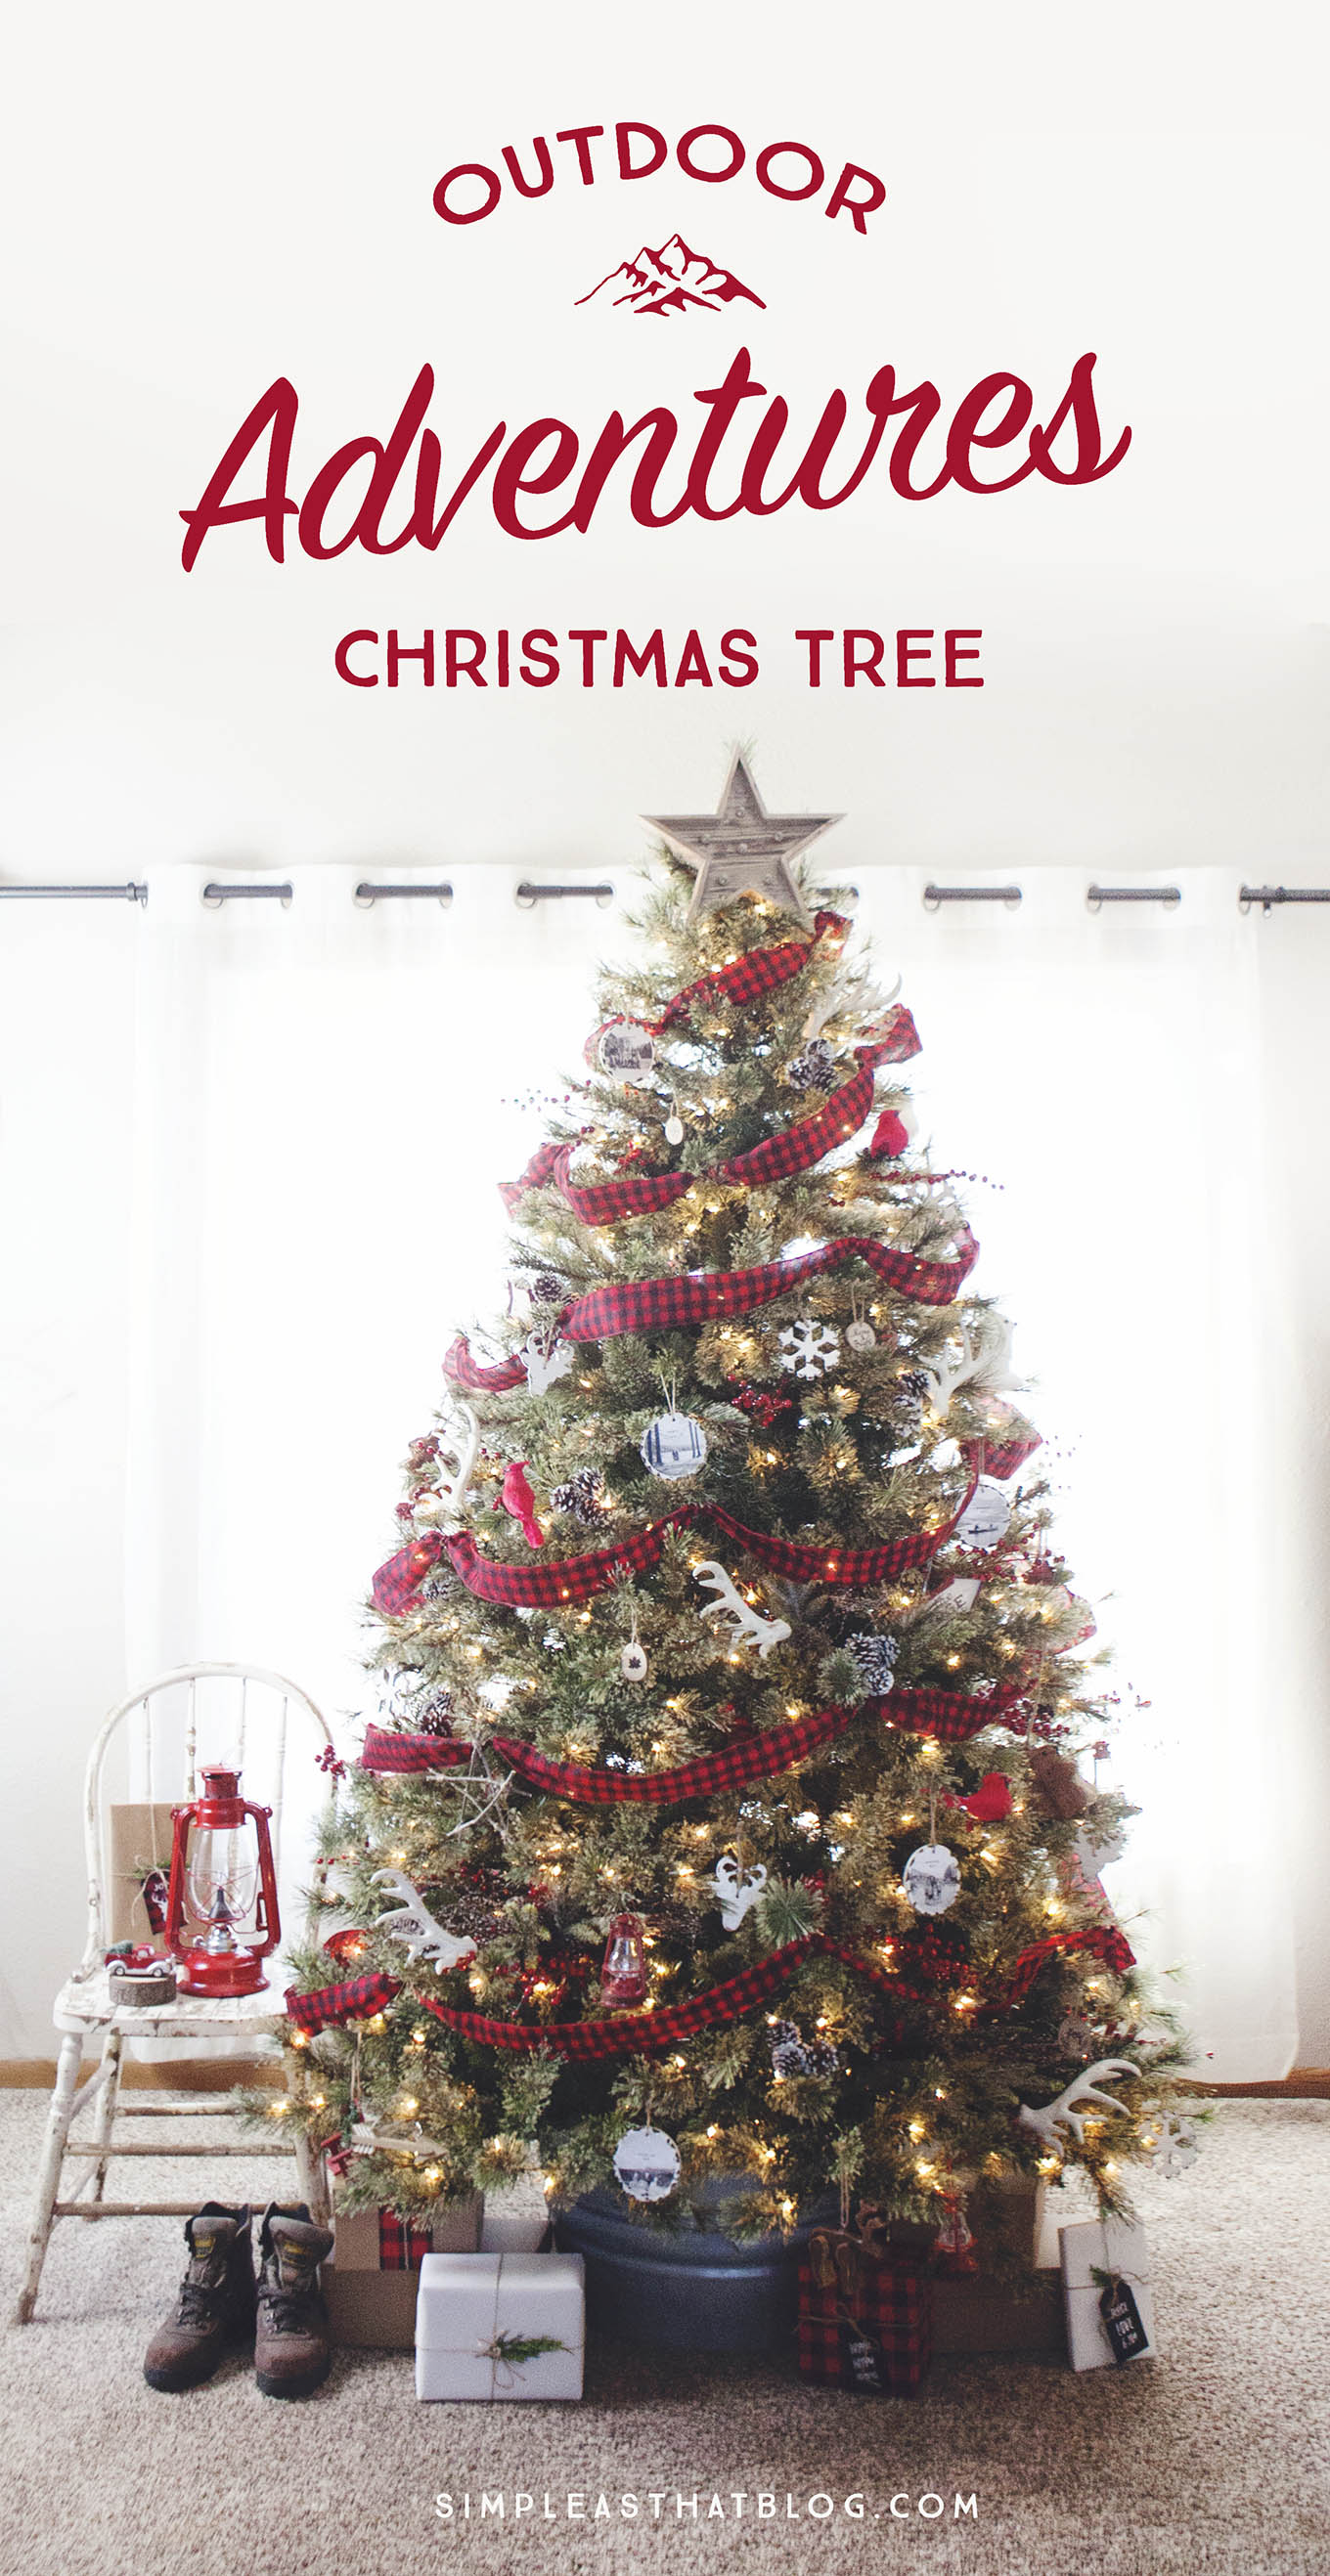 What story is your Christmas tree telling? Check out this adventure-themed Christmas tree, which reflects this family's love for each other and the great outdoors!